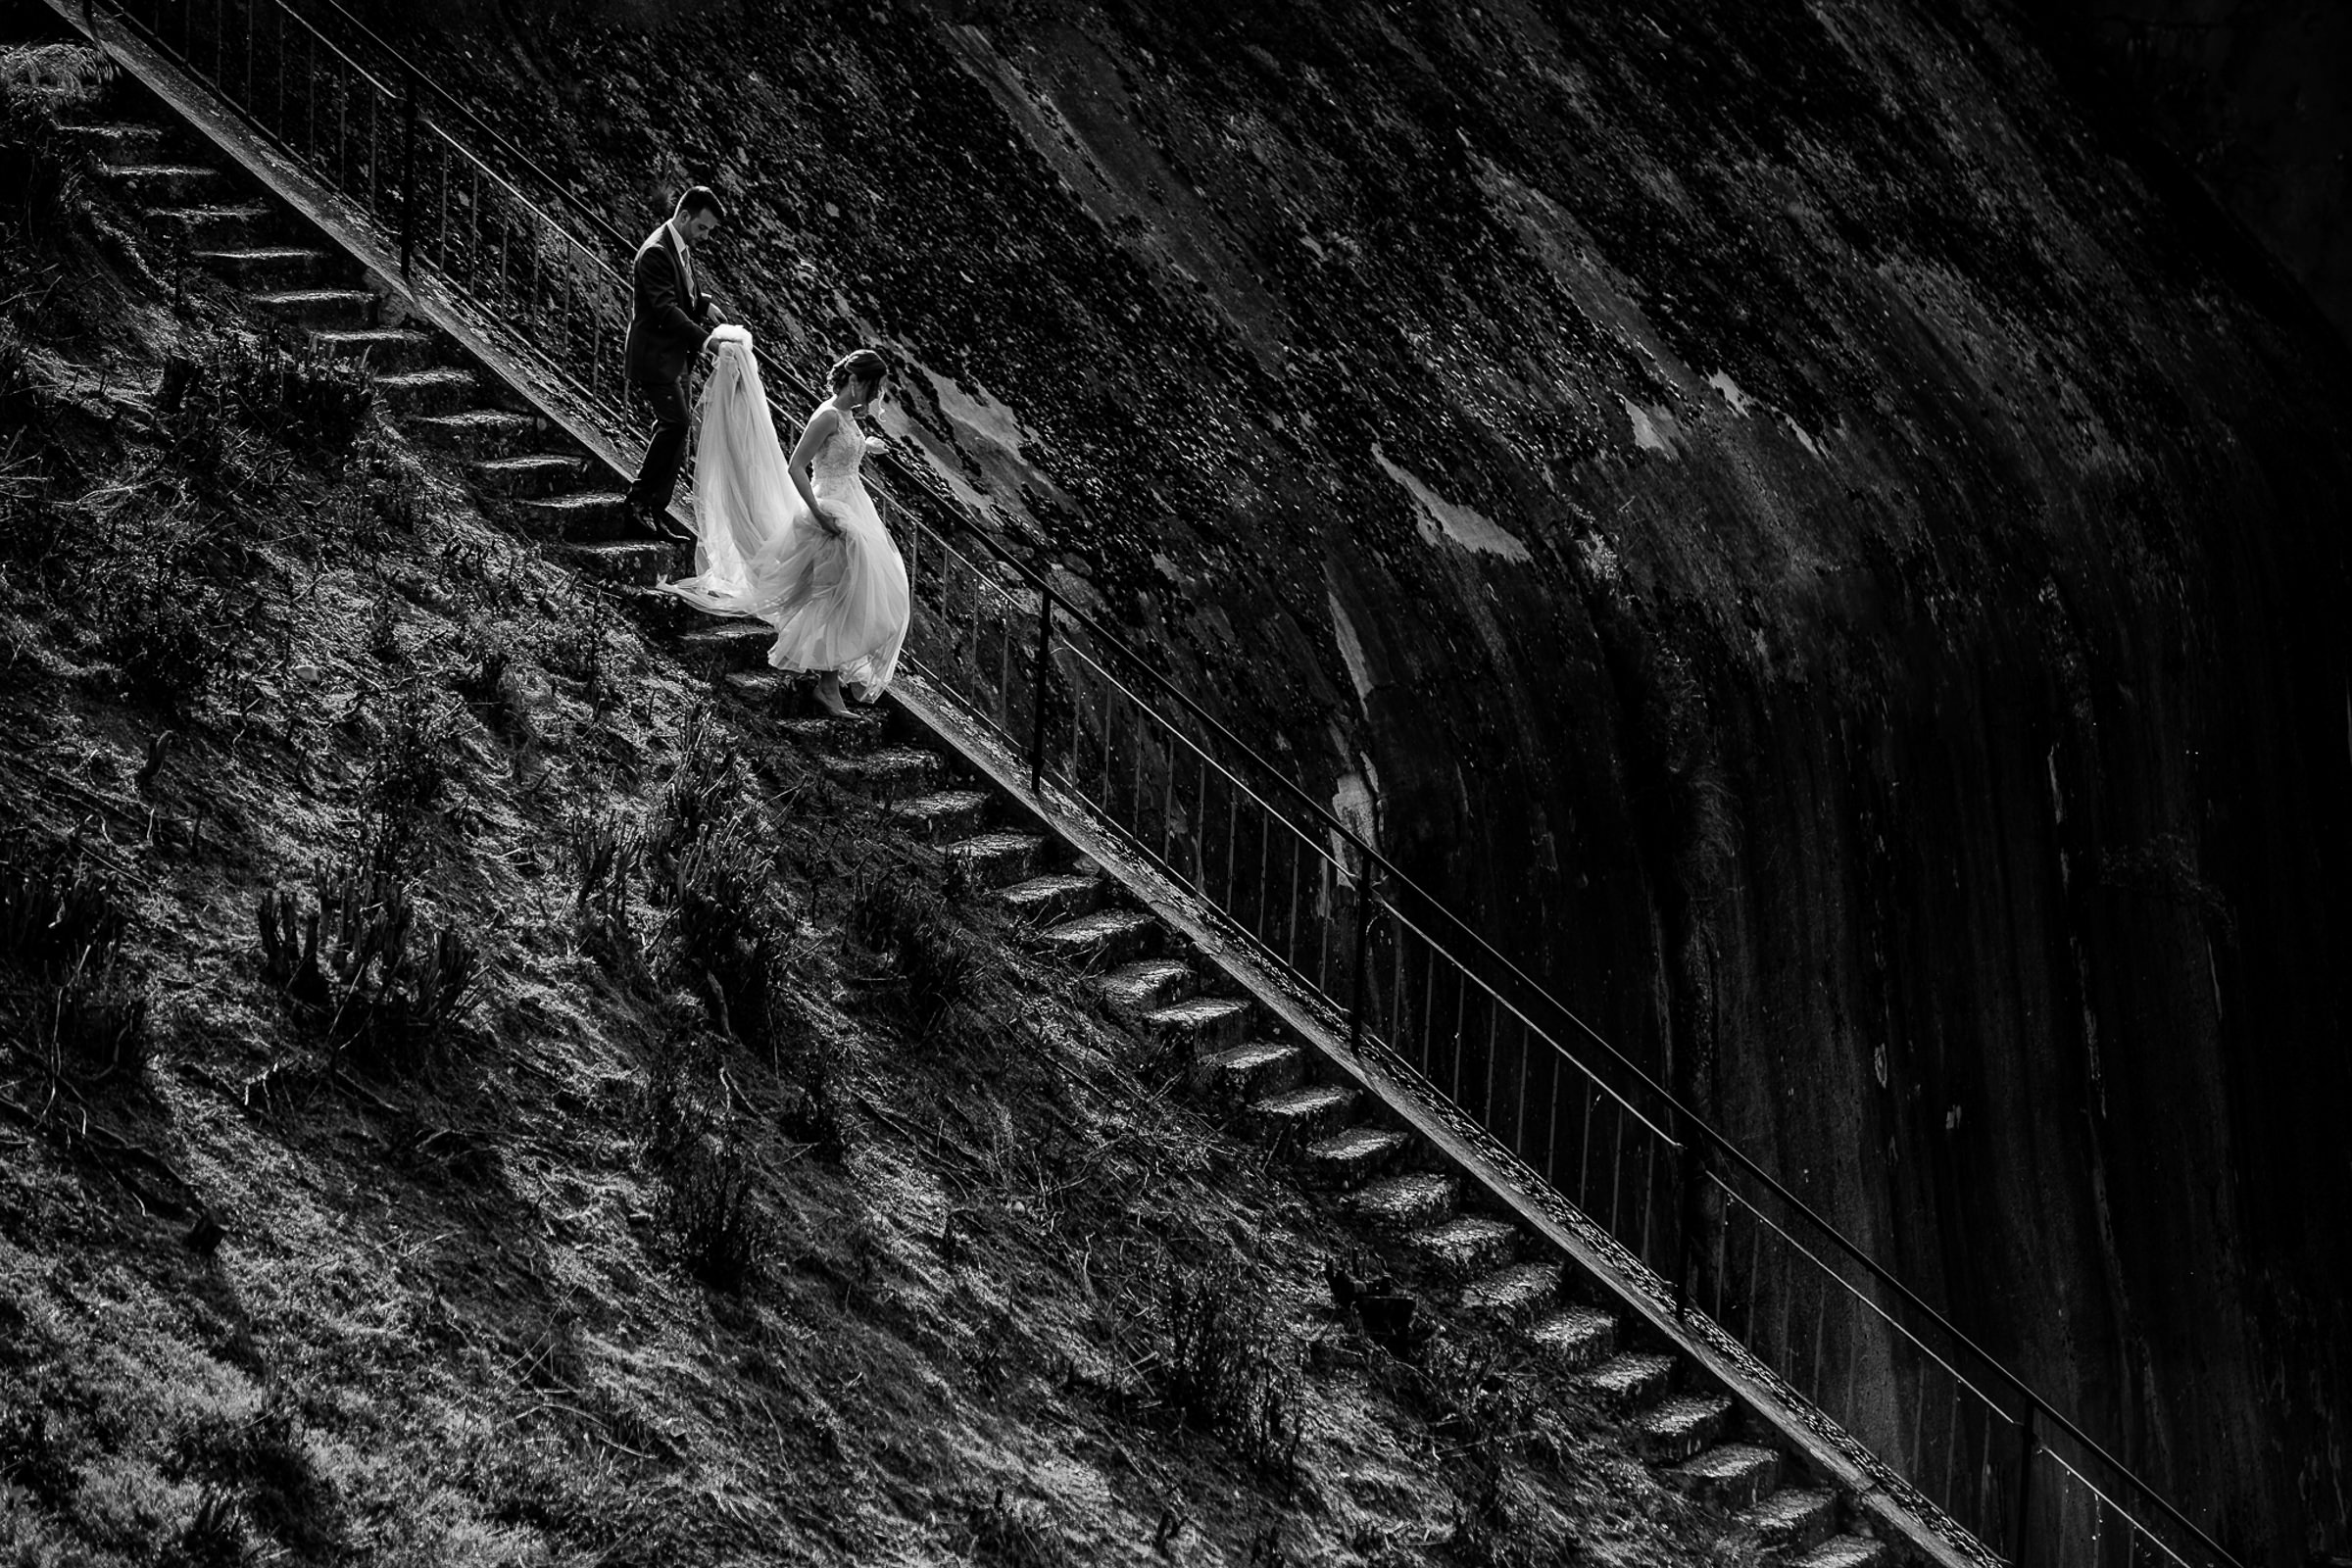 Bride descends steep cliff stairs while groom holds her gown - photo by Deliysky Studio